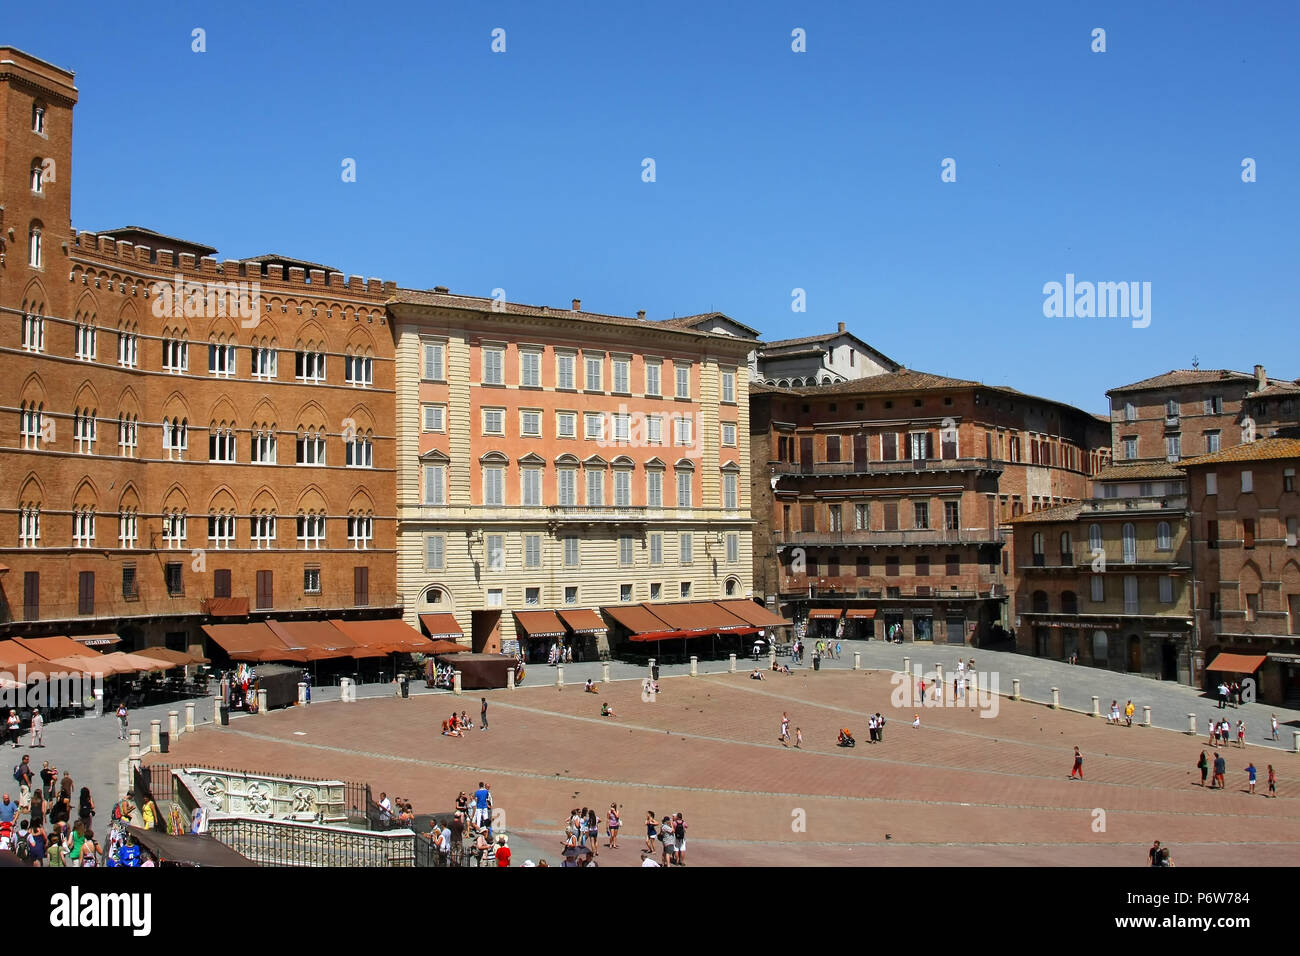 SIENA, ITALY - JULY 05, 2008: Piazza del Campo is the main square of Siena - Stock Image